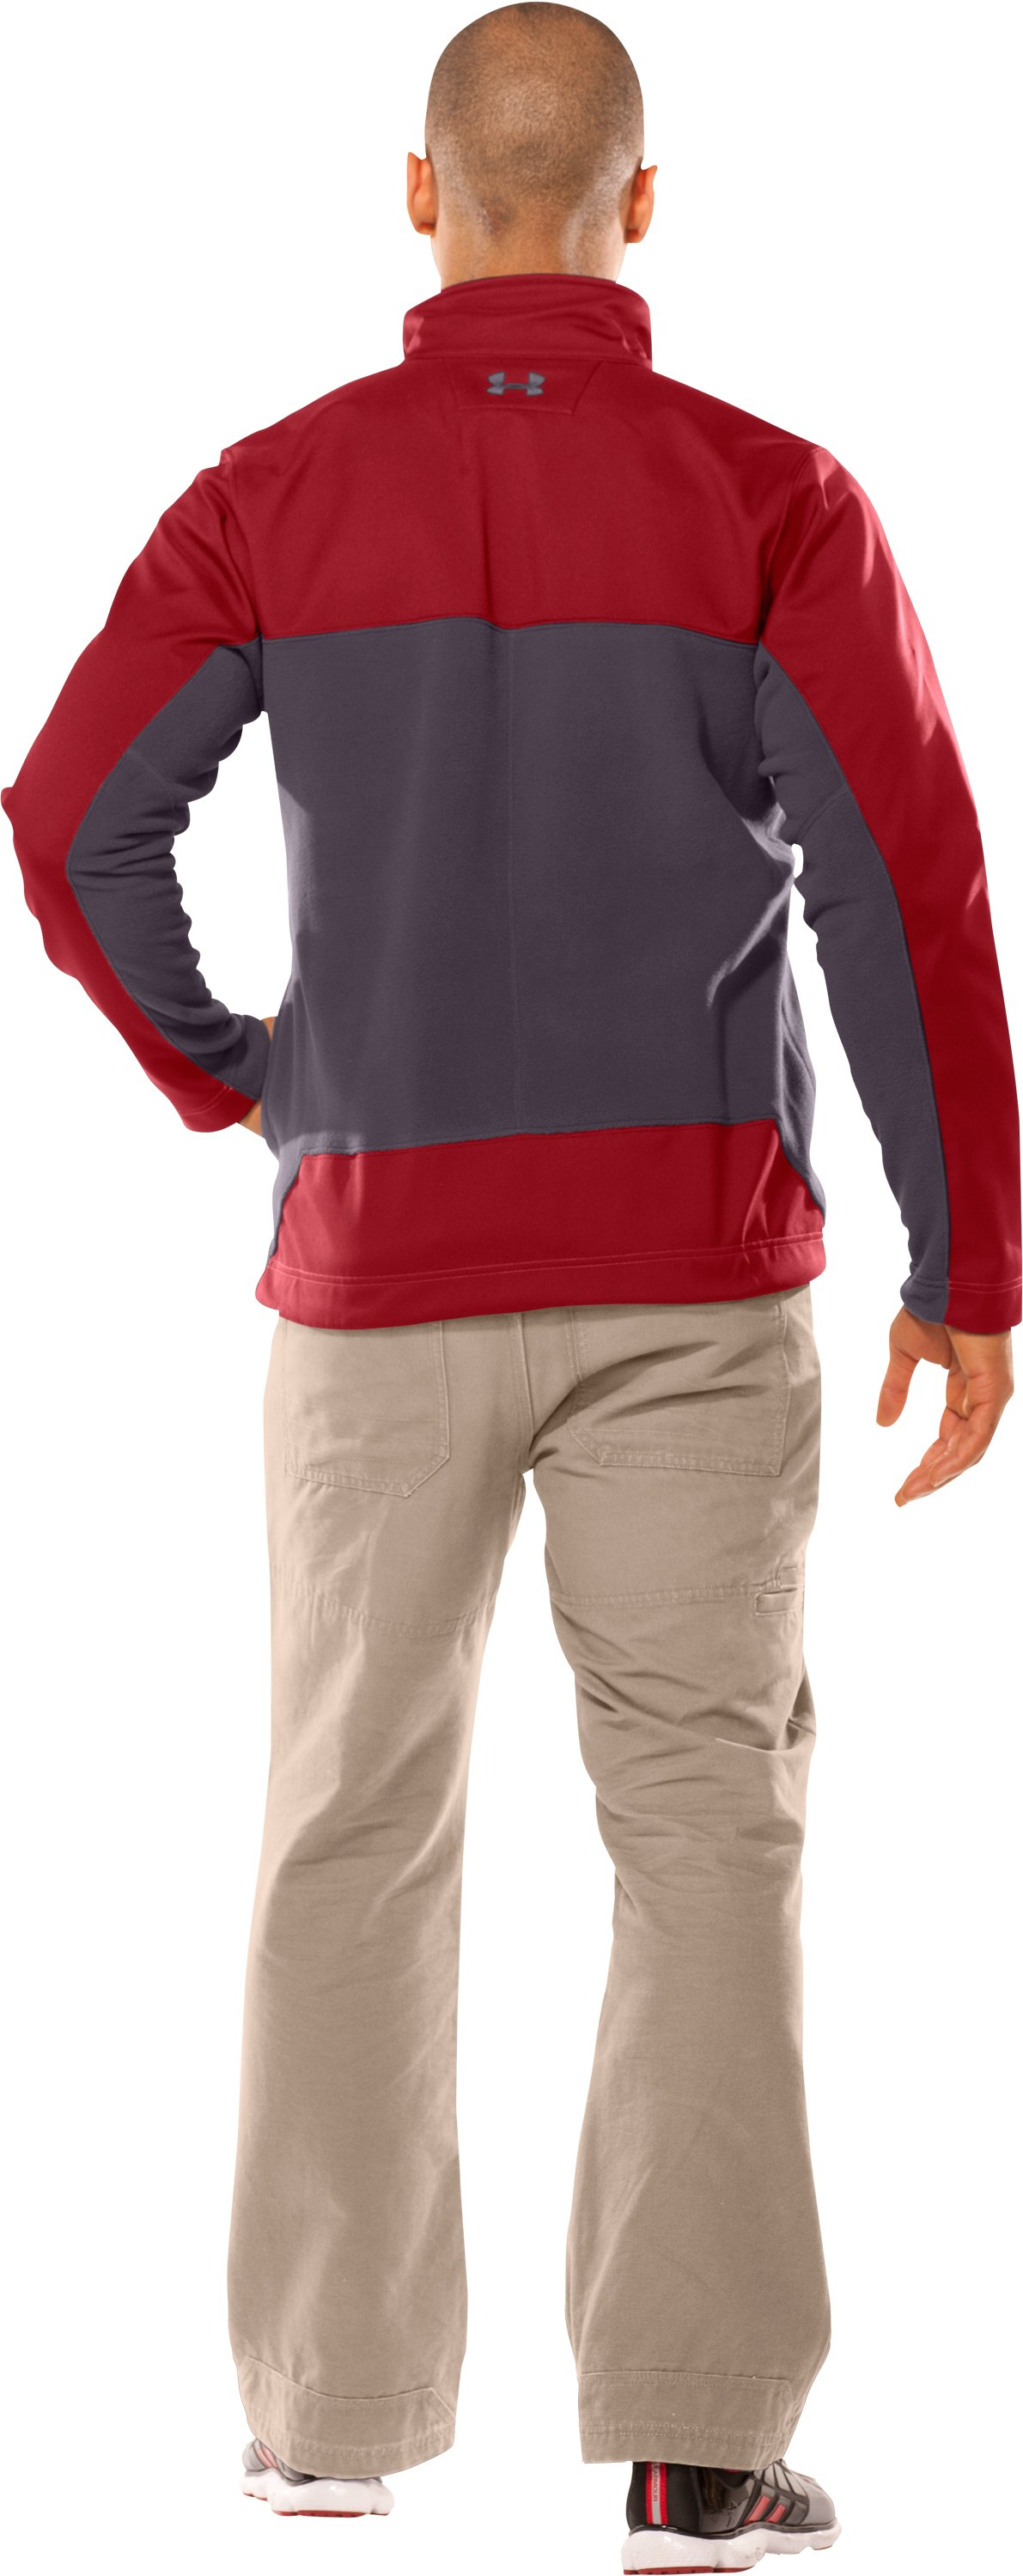 Men's Muroc Jacket, Crimson, Back